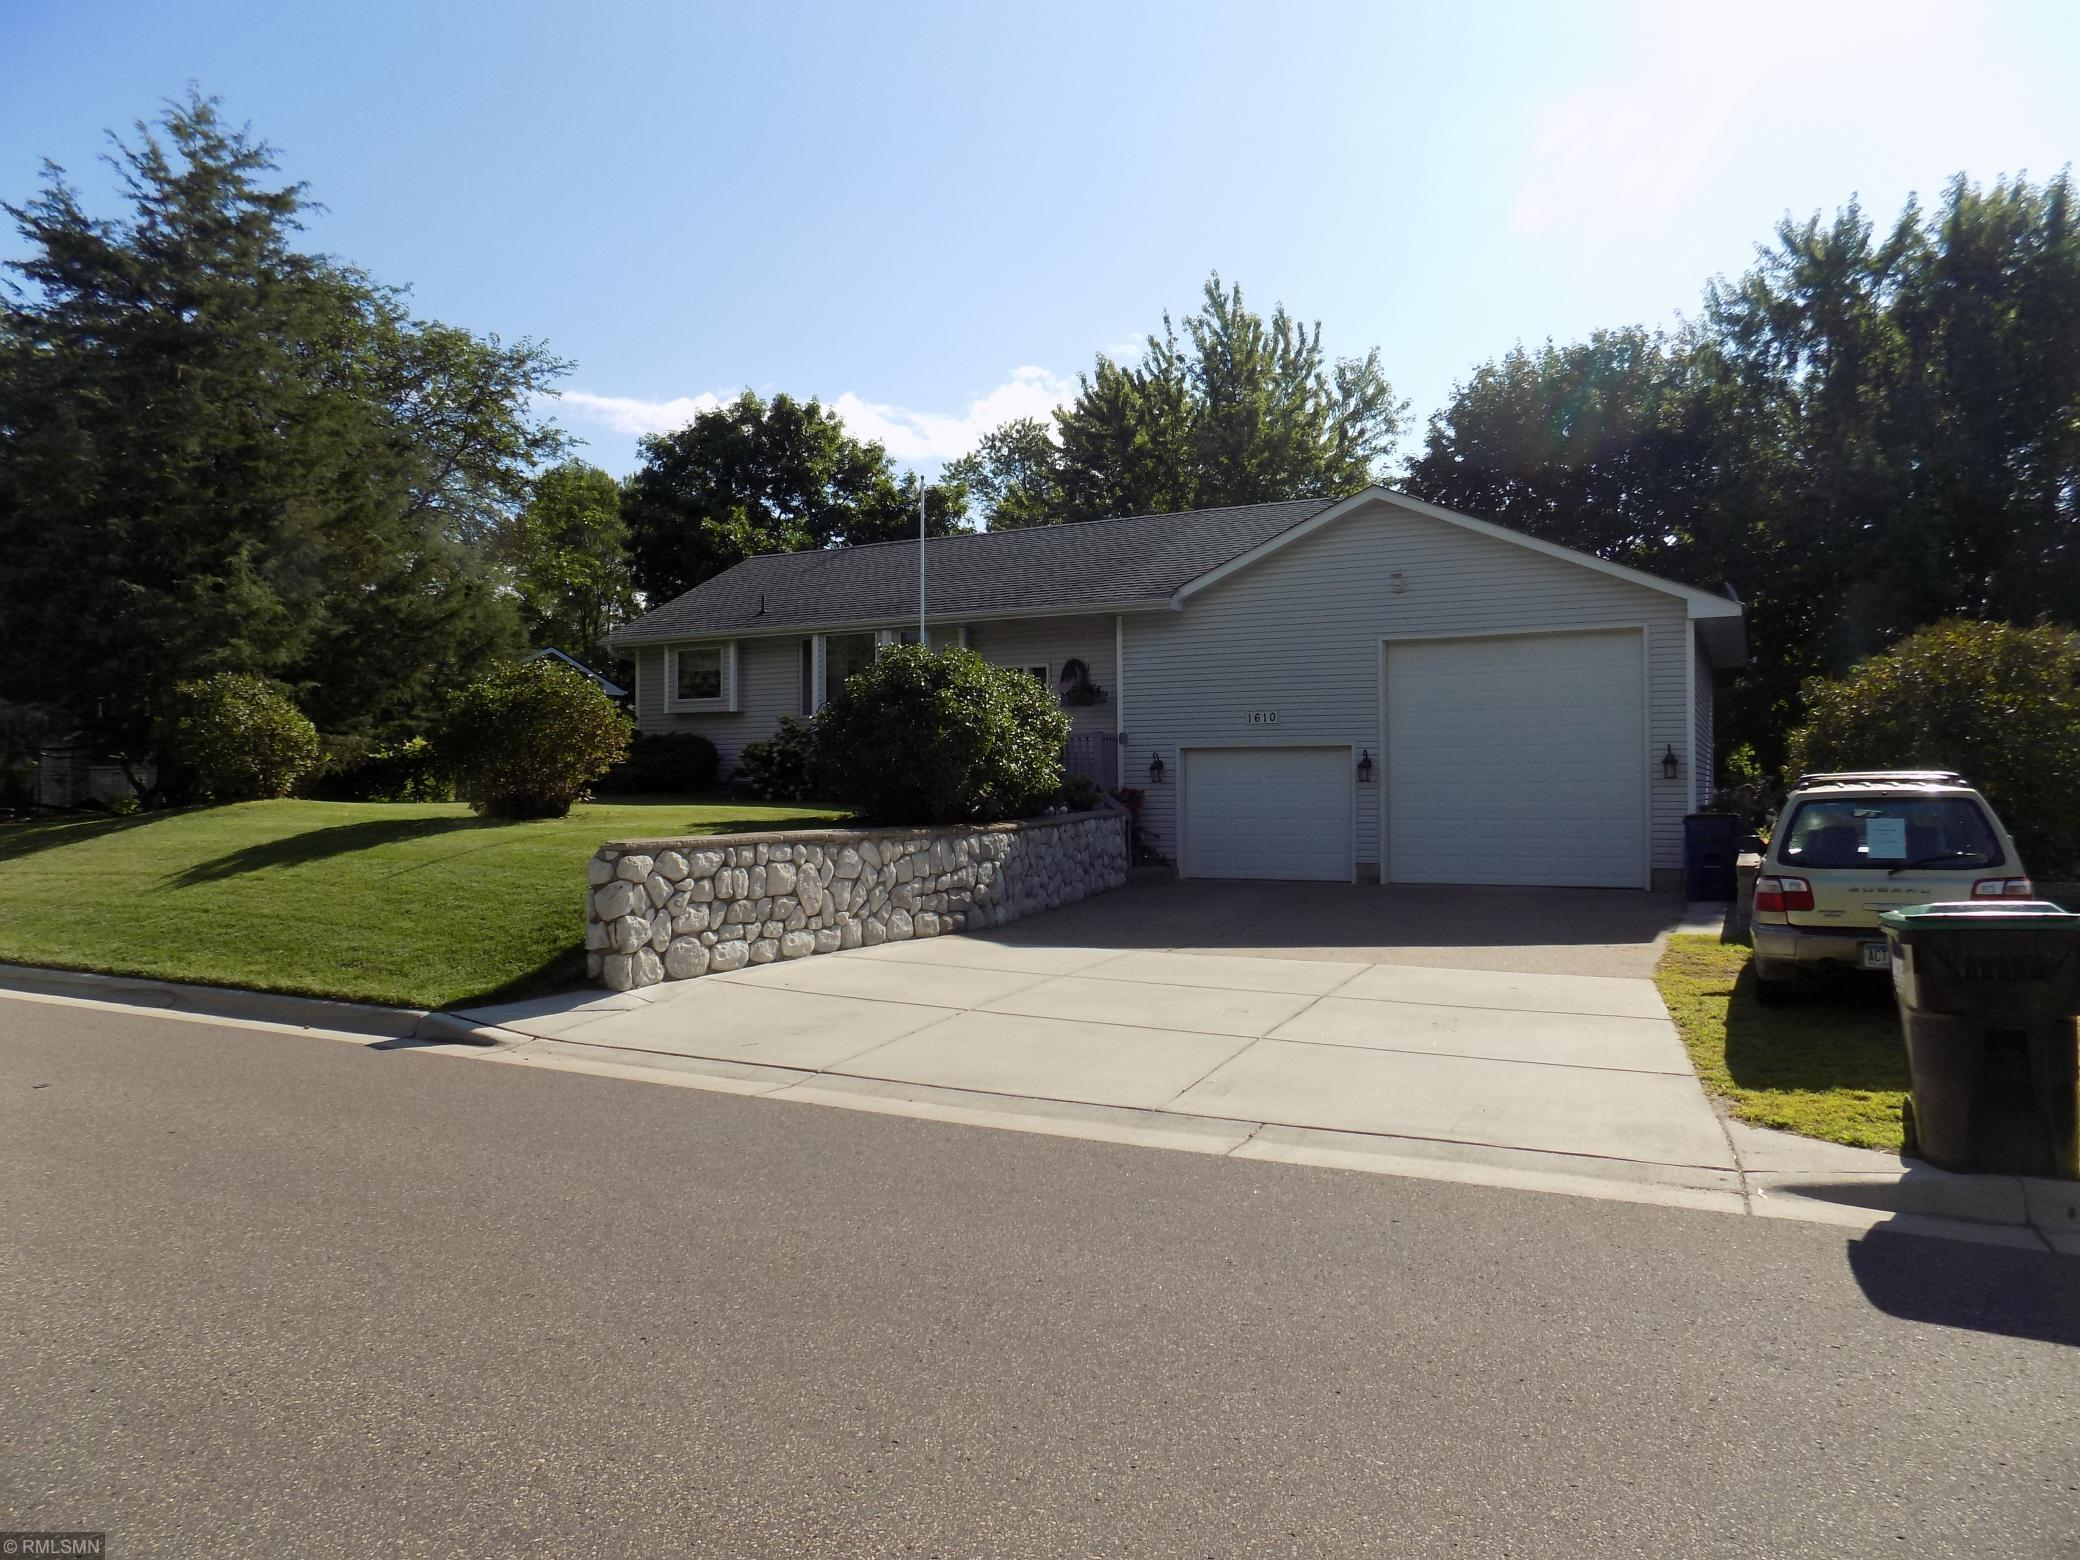 1610 10th Avenue Property Photo - Anoka, MN real estate listing